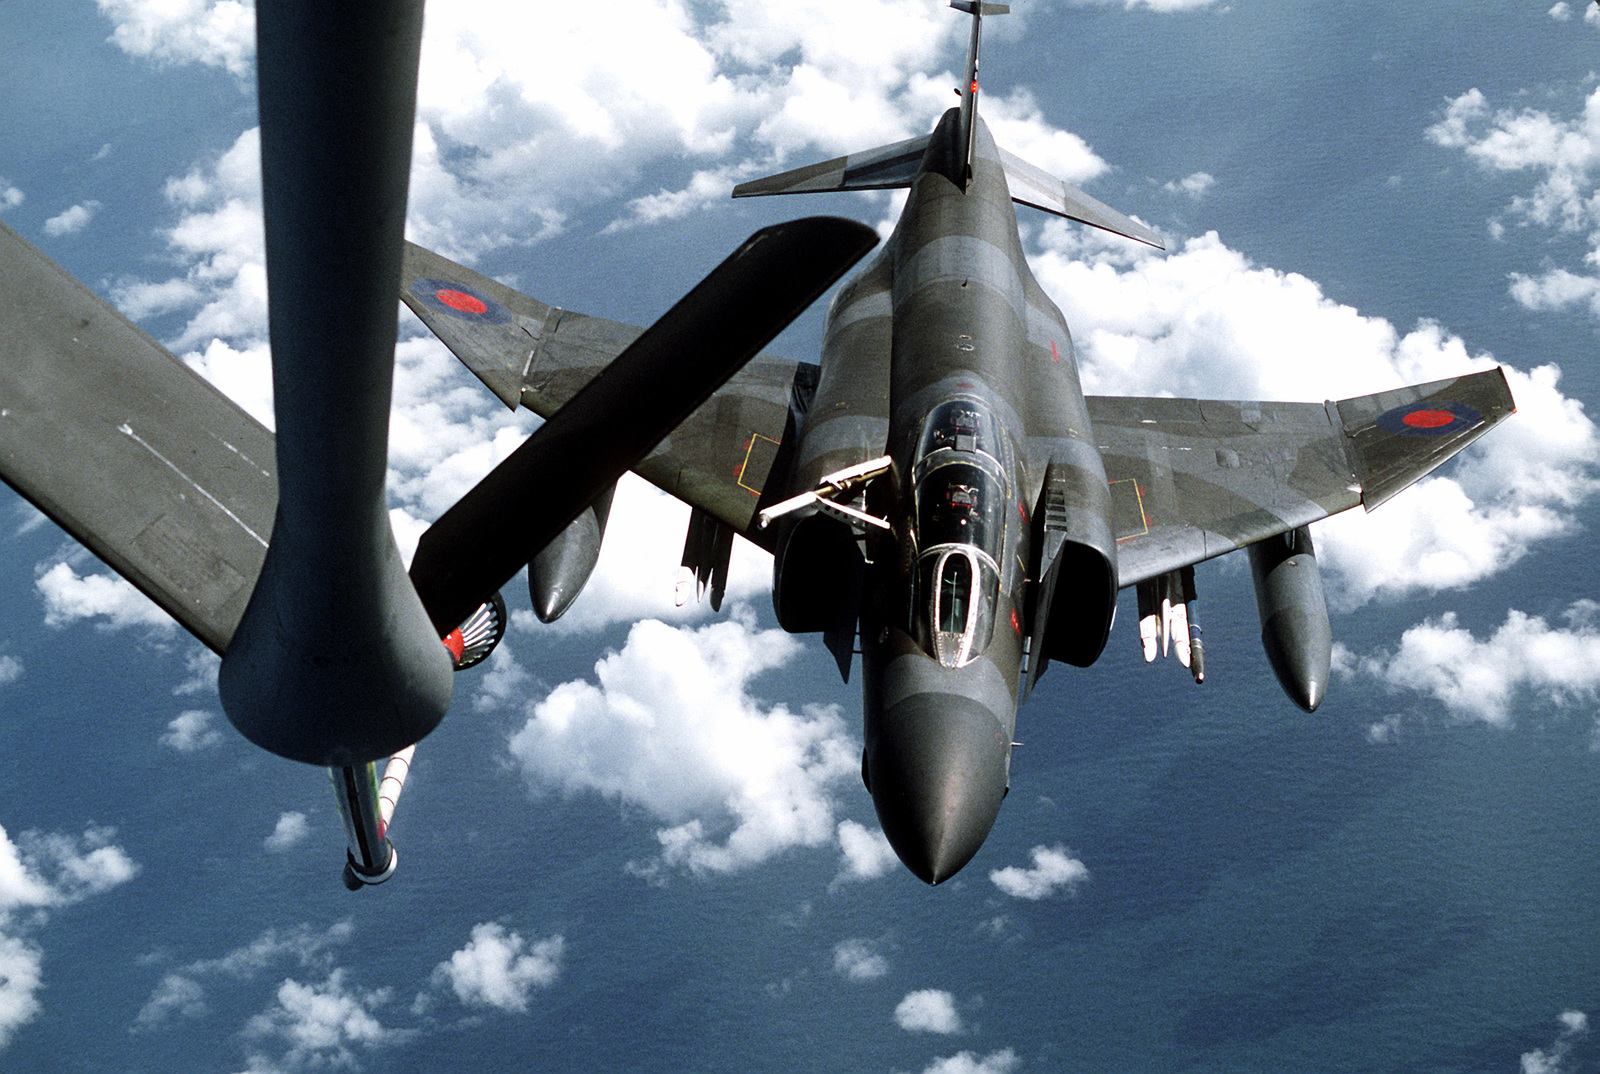 High angle front view of a Royal Air Force RF-4 Phantom II aircraft approaching the refueling drogue of a KC-135 Stratotanker for in-flight refueling. The KC-135 is assigned to the 306th Strategic Refueling Wing